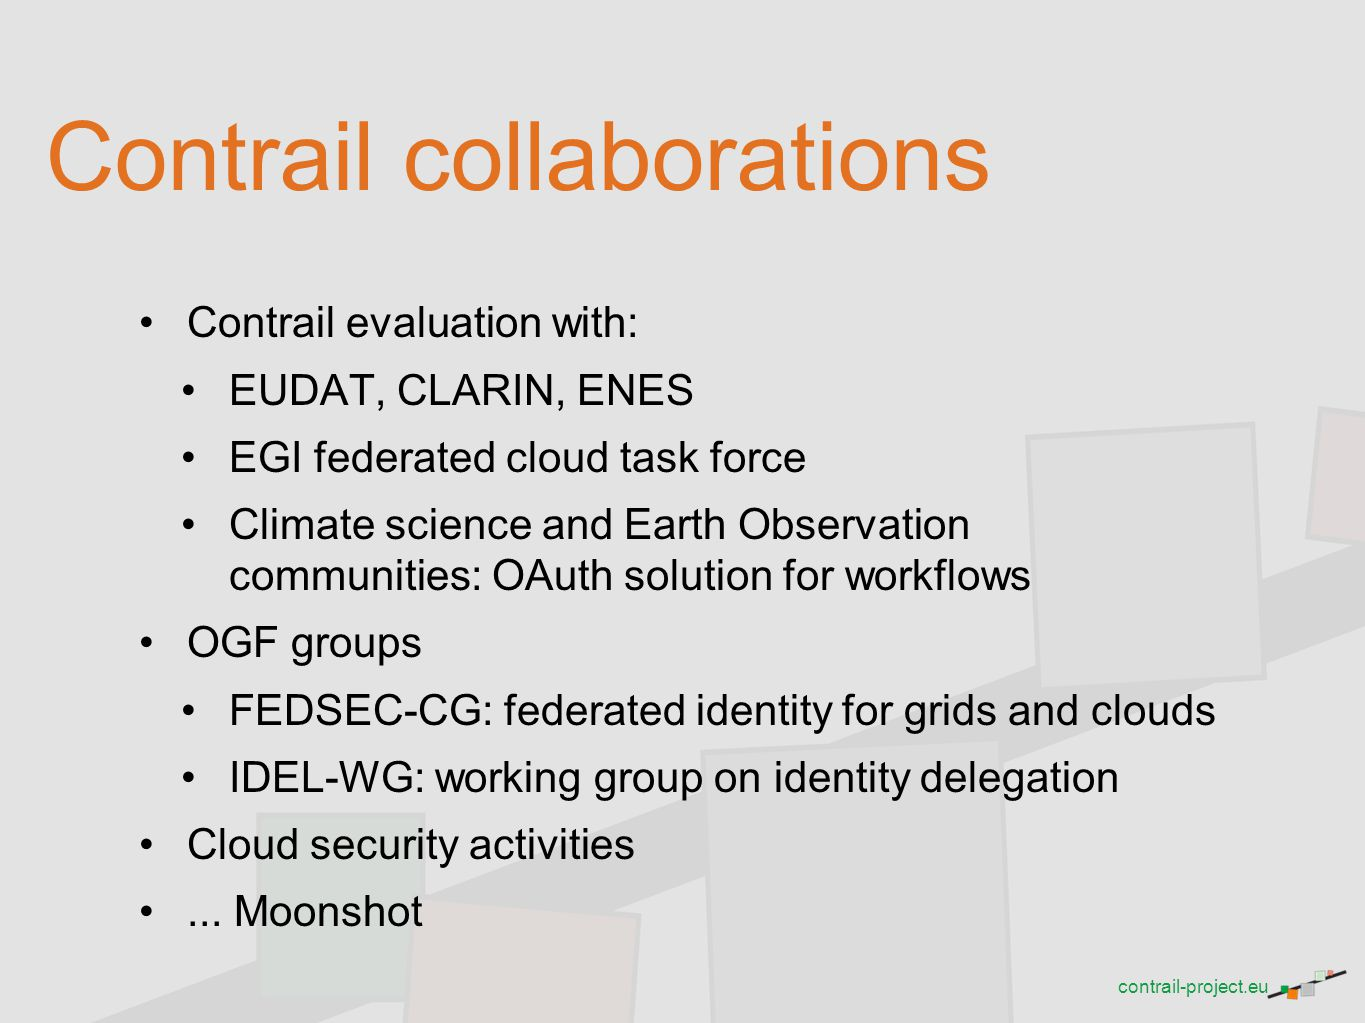 Contrail collaborations